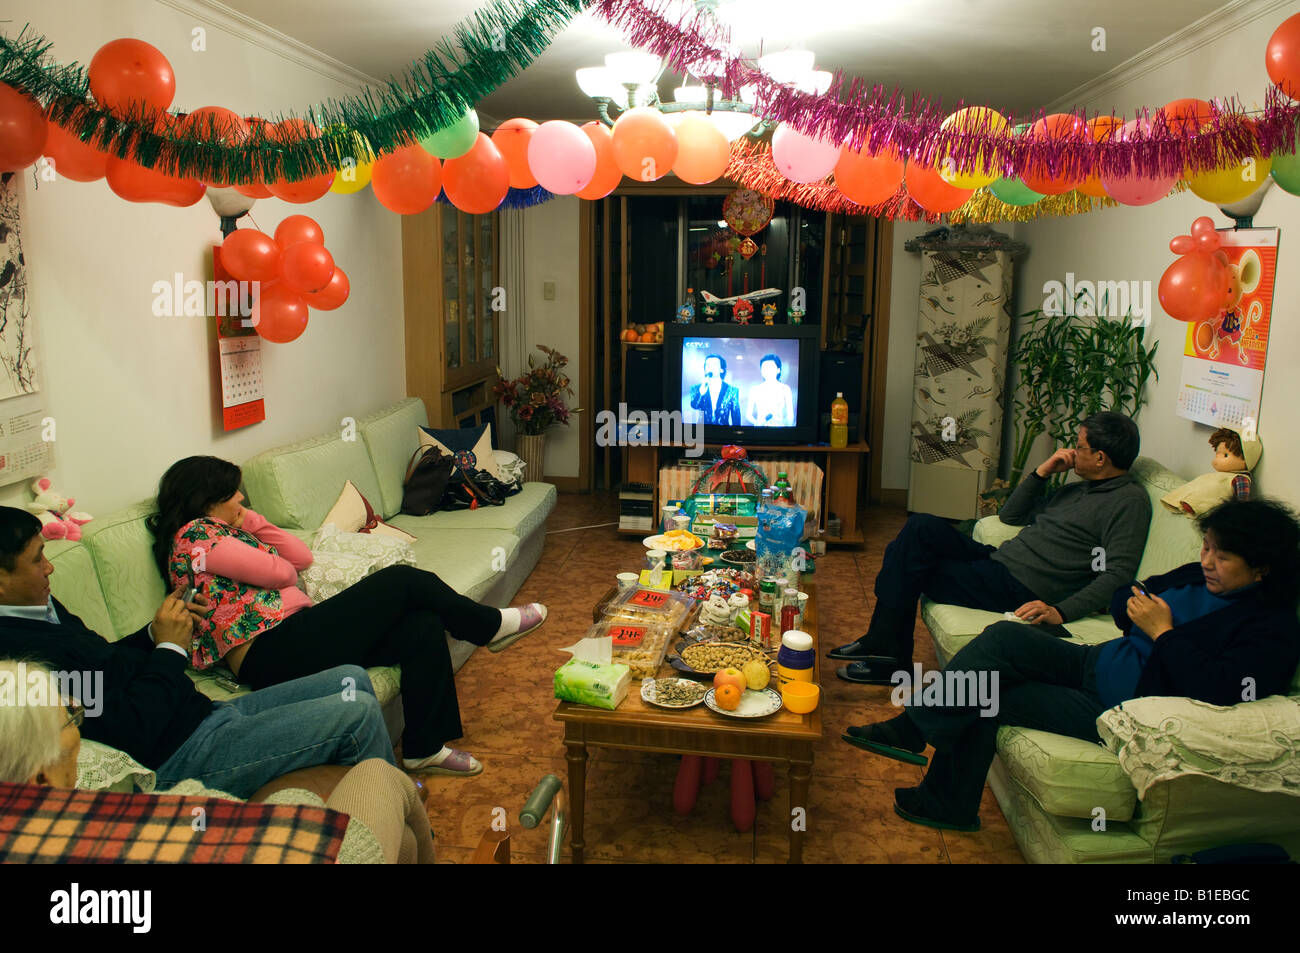 China Beijing Chinese New Year Spring Festival family dinner celebrations - Stock Image